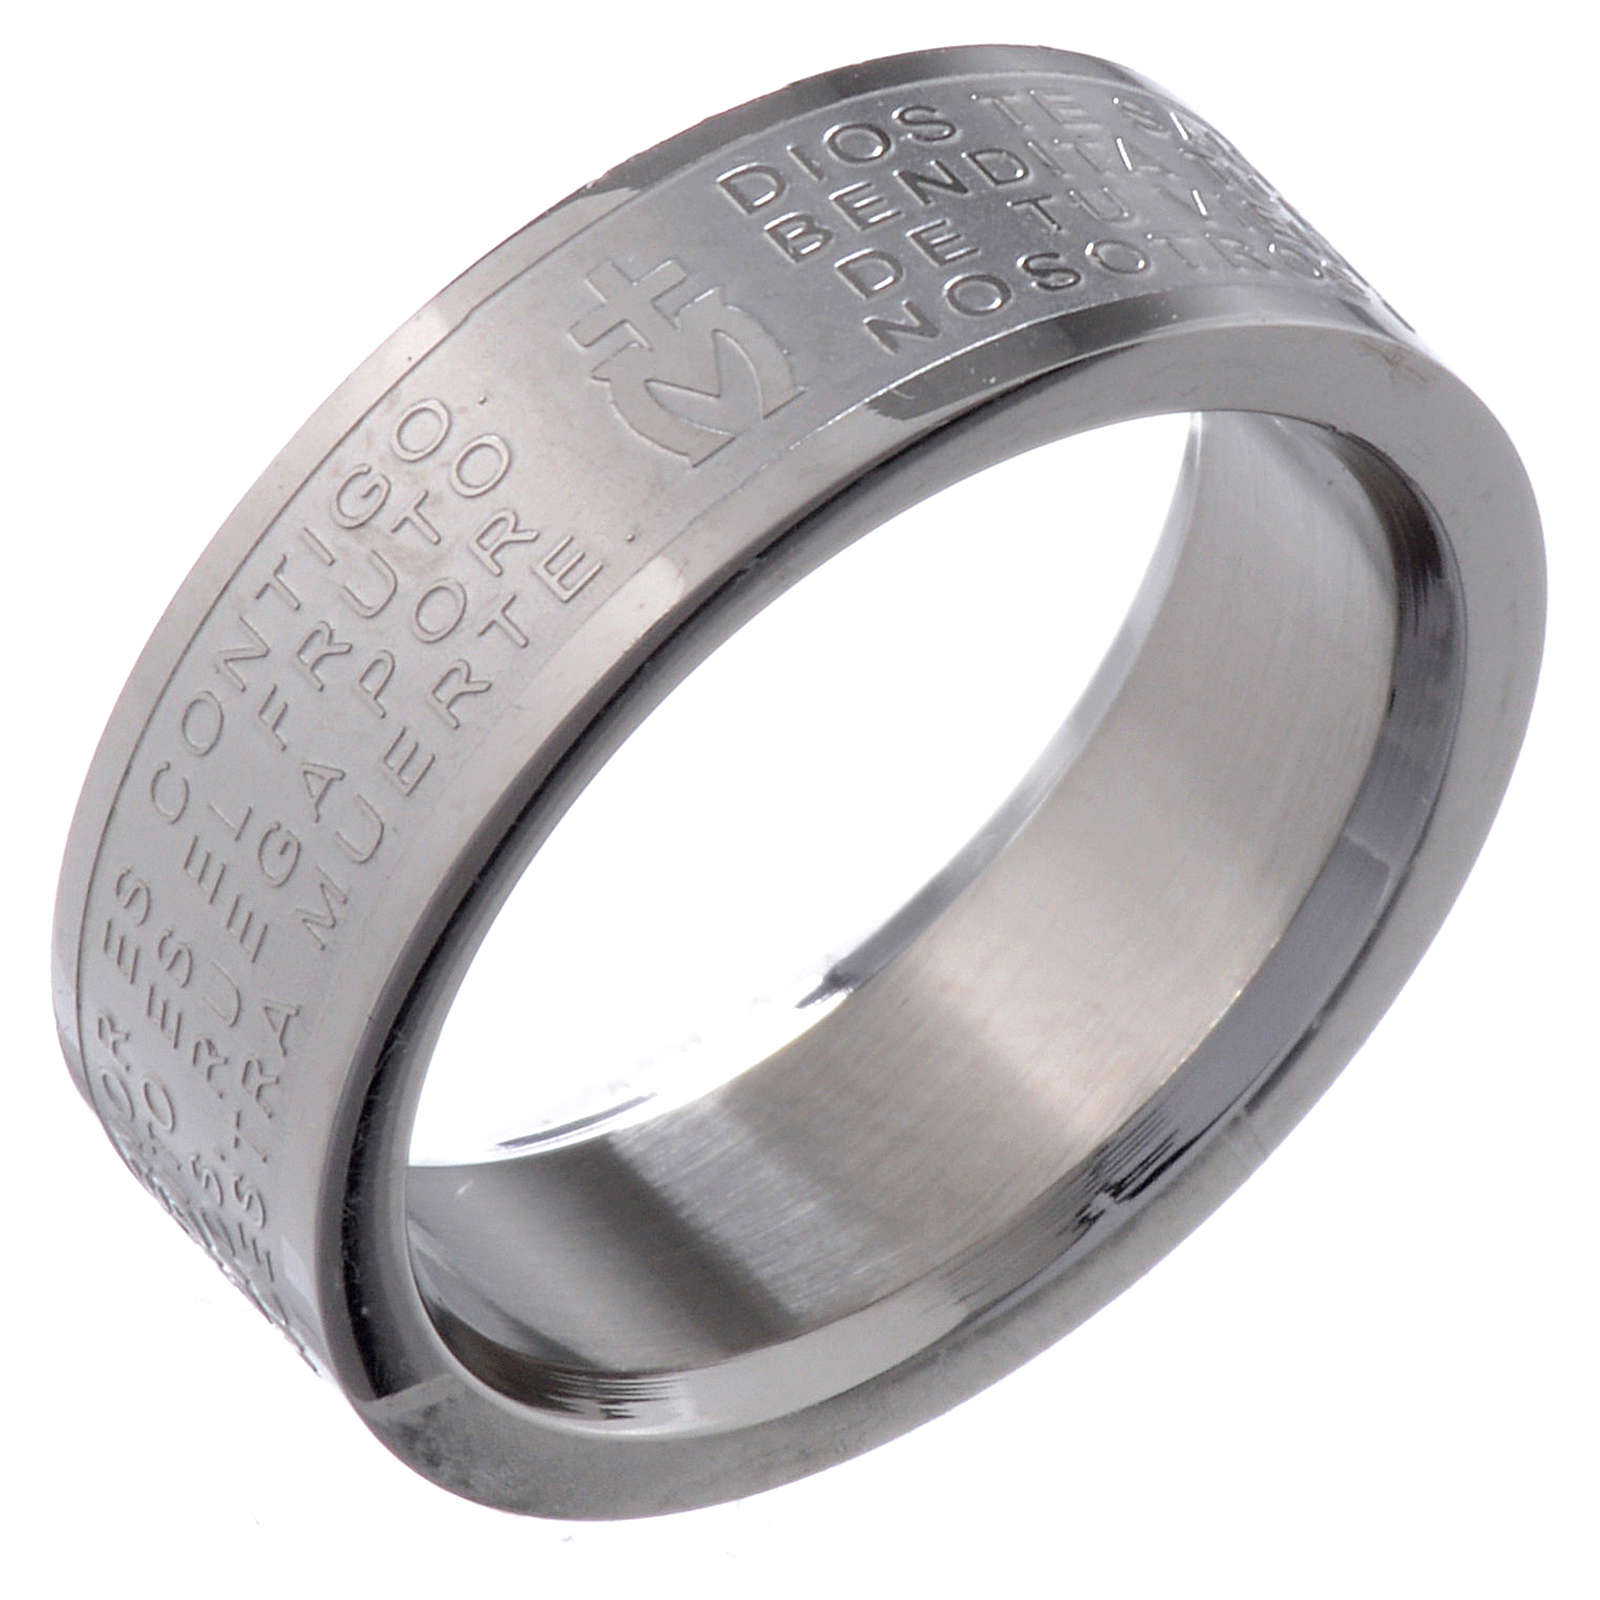 Hail Mary prayer ring in Spanish - stainless steel LUX 3